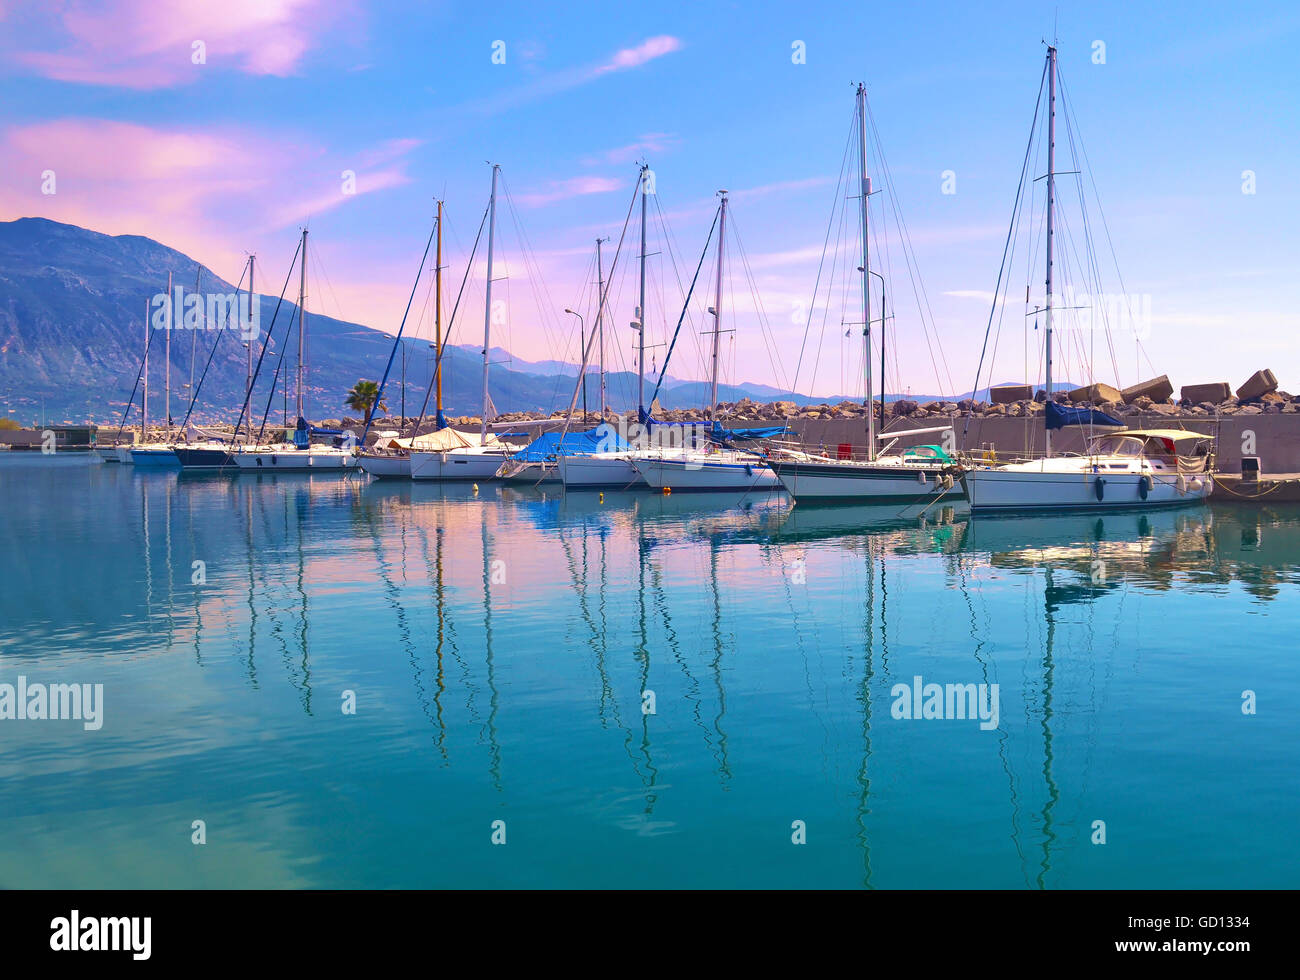 sunset boats reflection at Kalamata harbor Peloponnese Greece - Stock Image